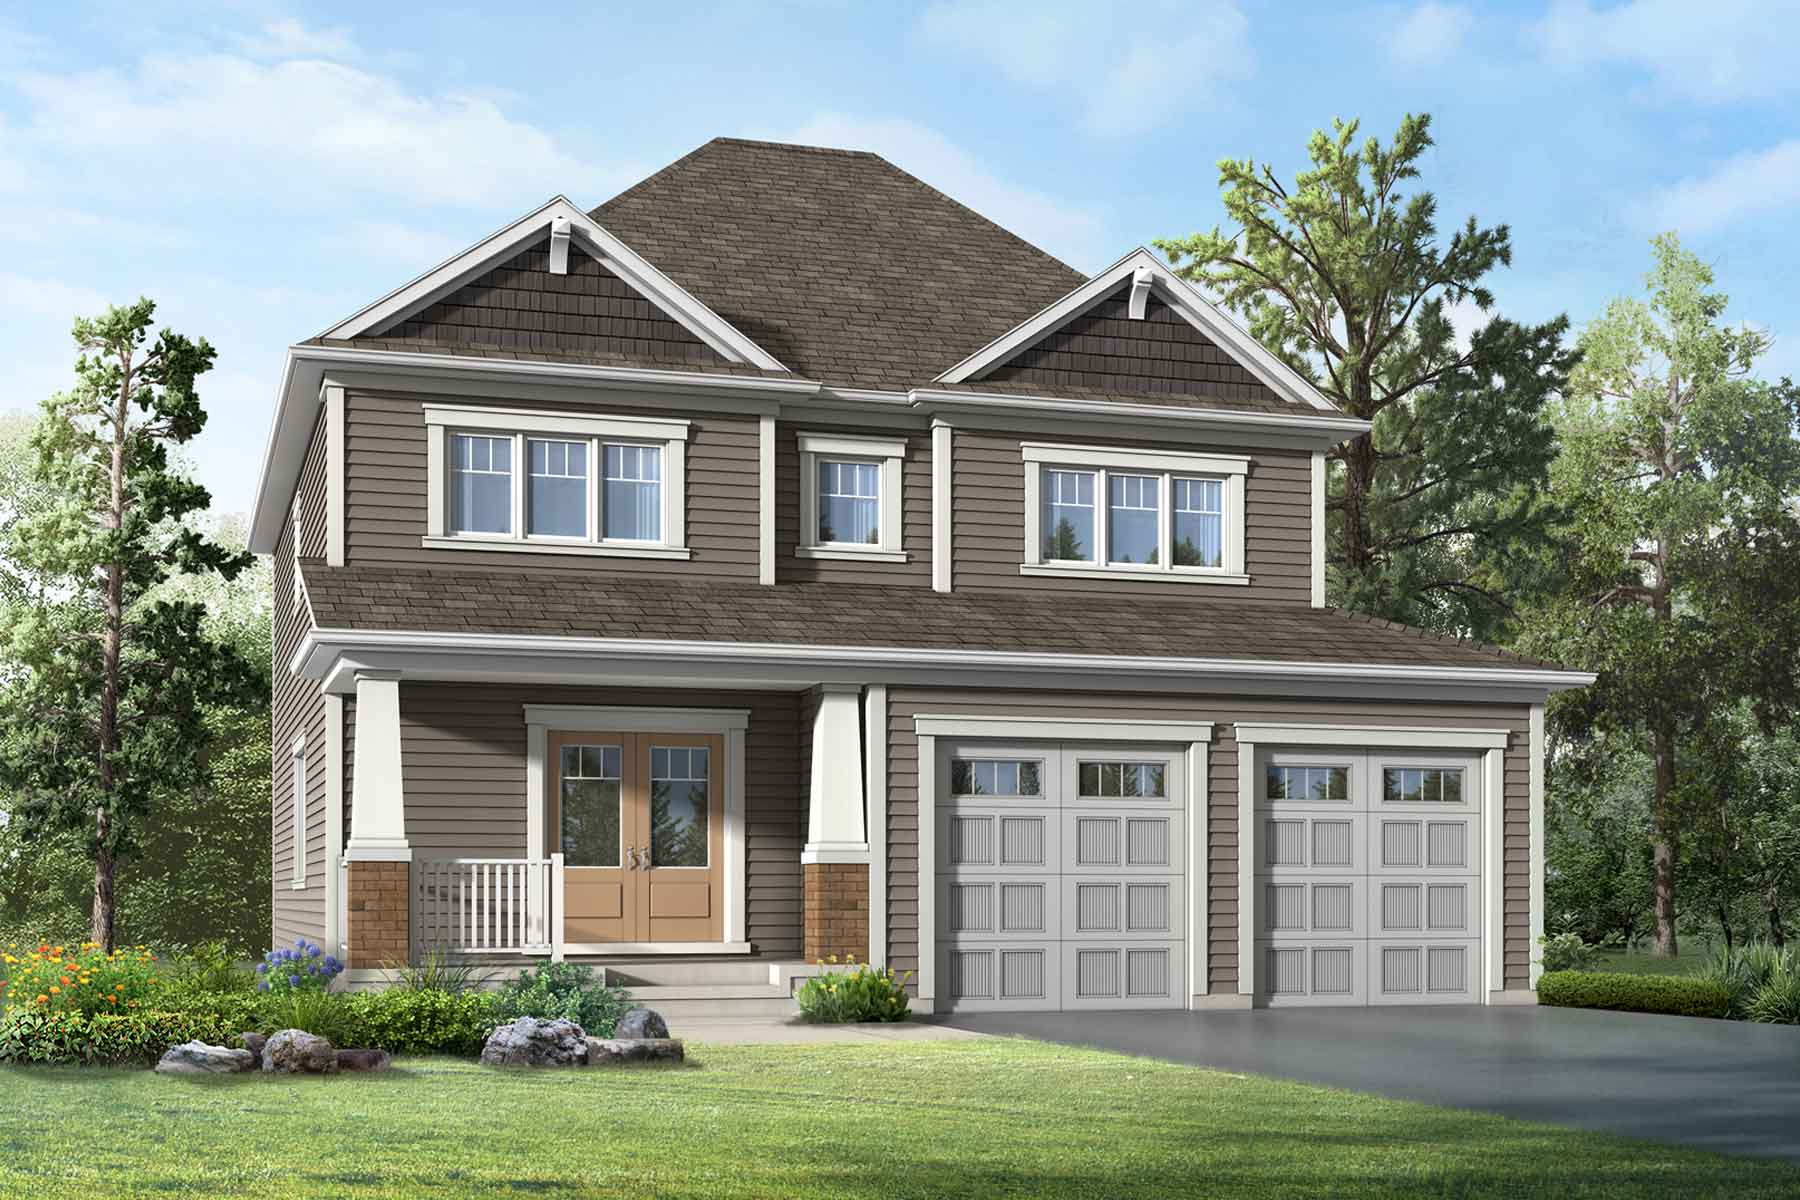 Willow Plan Elevation Front at White Pines in Bracebridge Ontario by Mattamy Homes